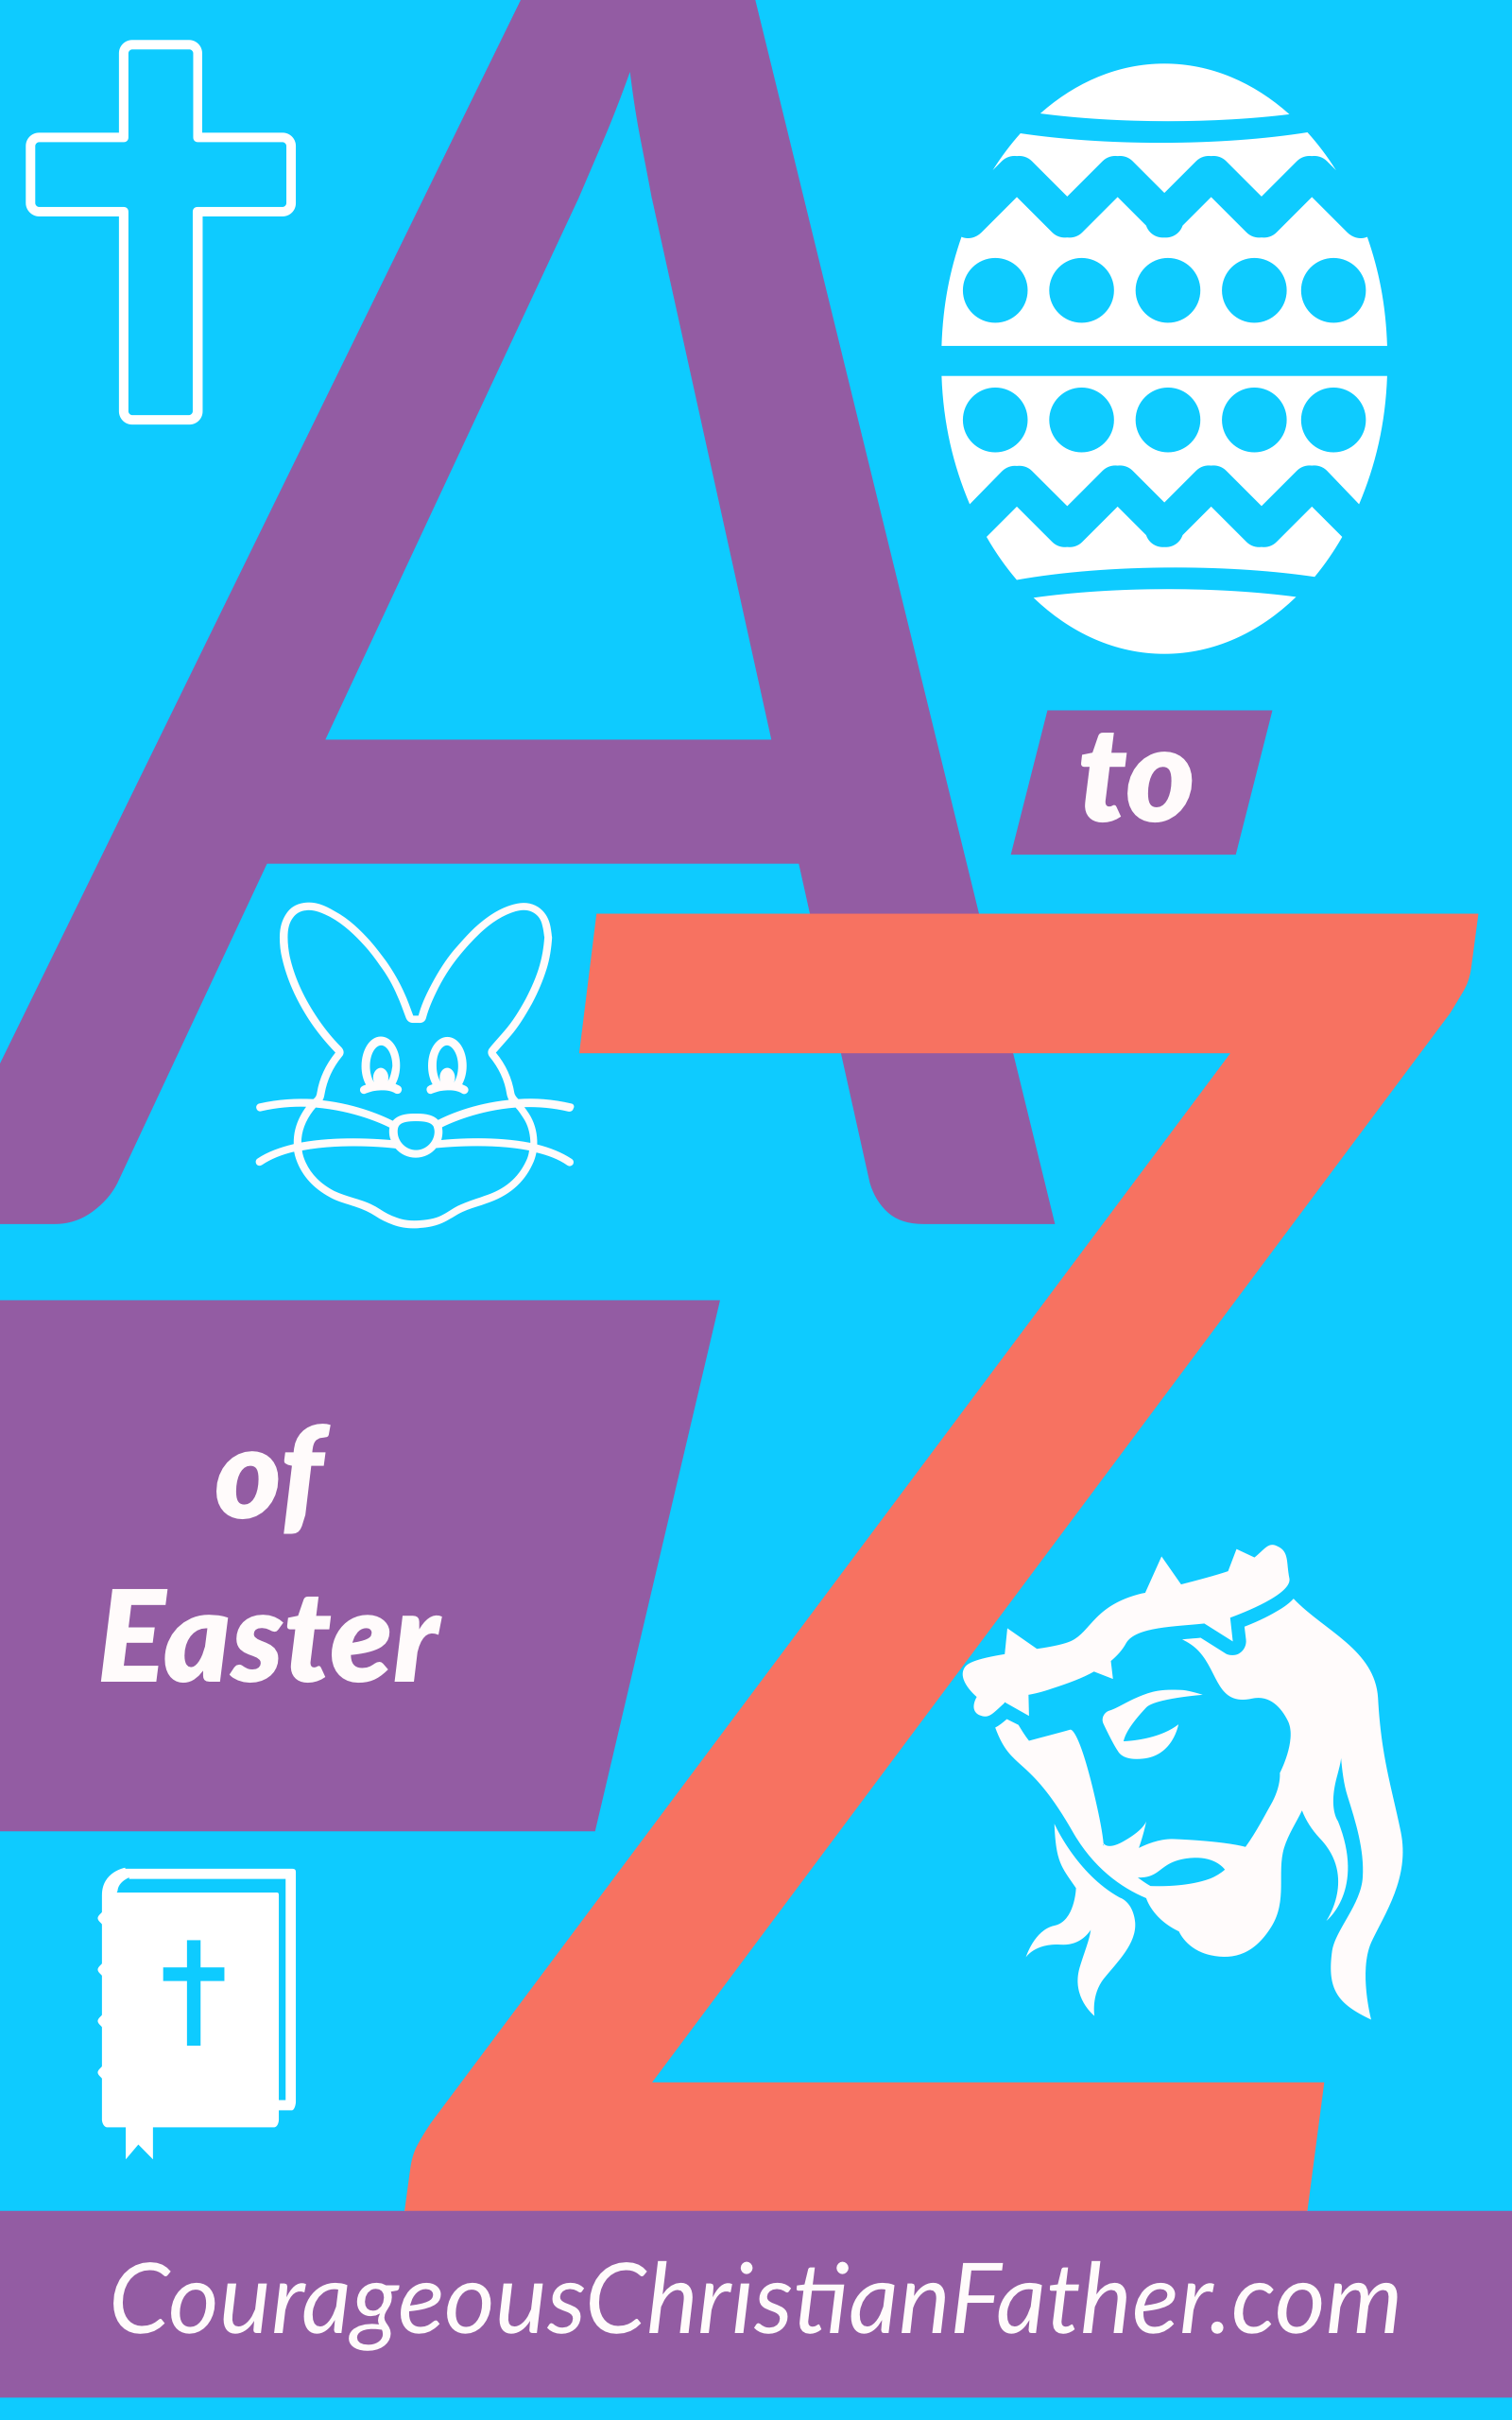 The A-Z of Easter - I take each letter of the alphabet and give a word that is related to Easter. I start with A and end with Z. #Easter